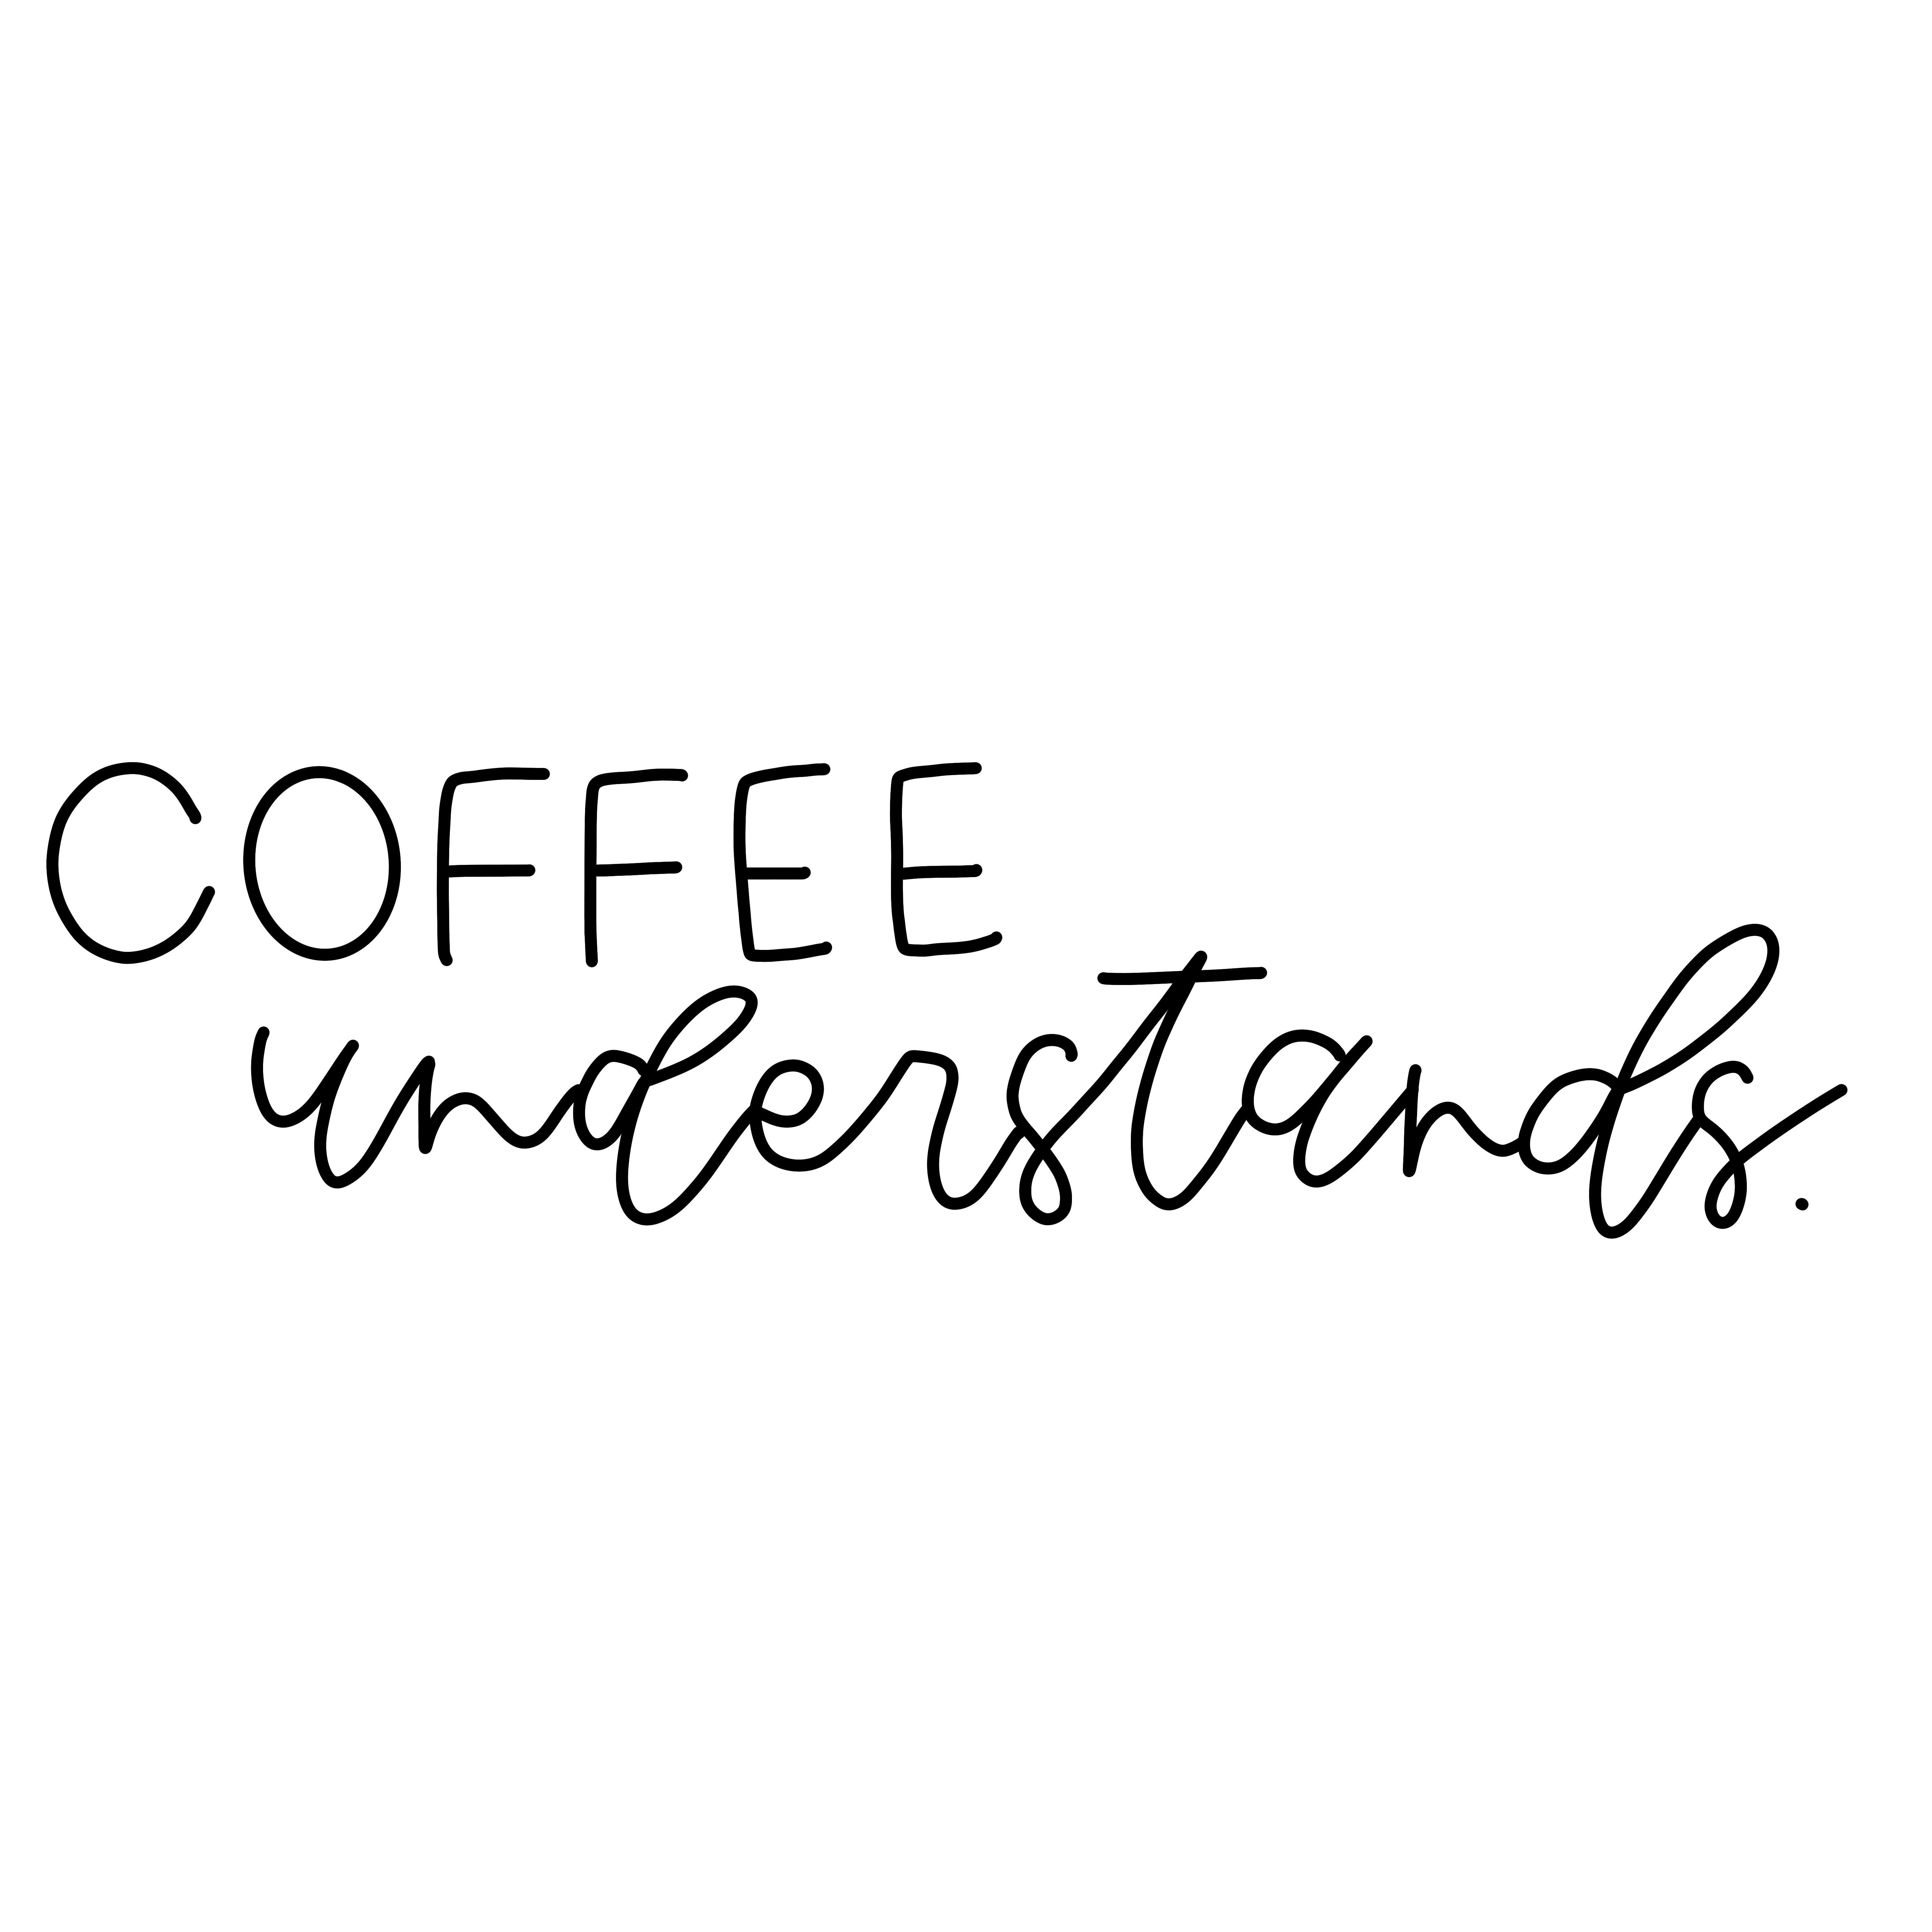 Coffee Quote Modern Hand Lettering Calligraphy Coffee Quotes Funny Inspirational Quotes Inspirational Quotes